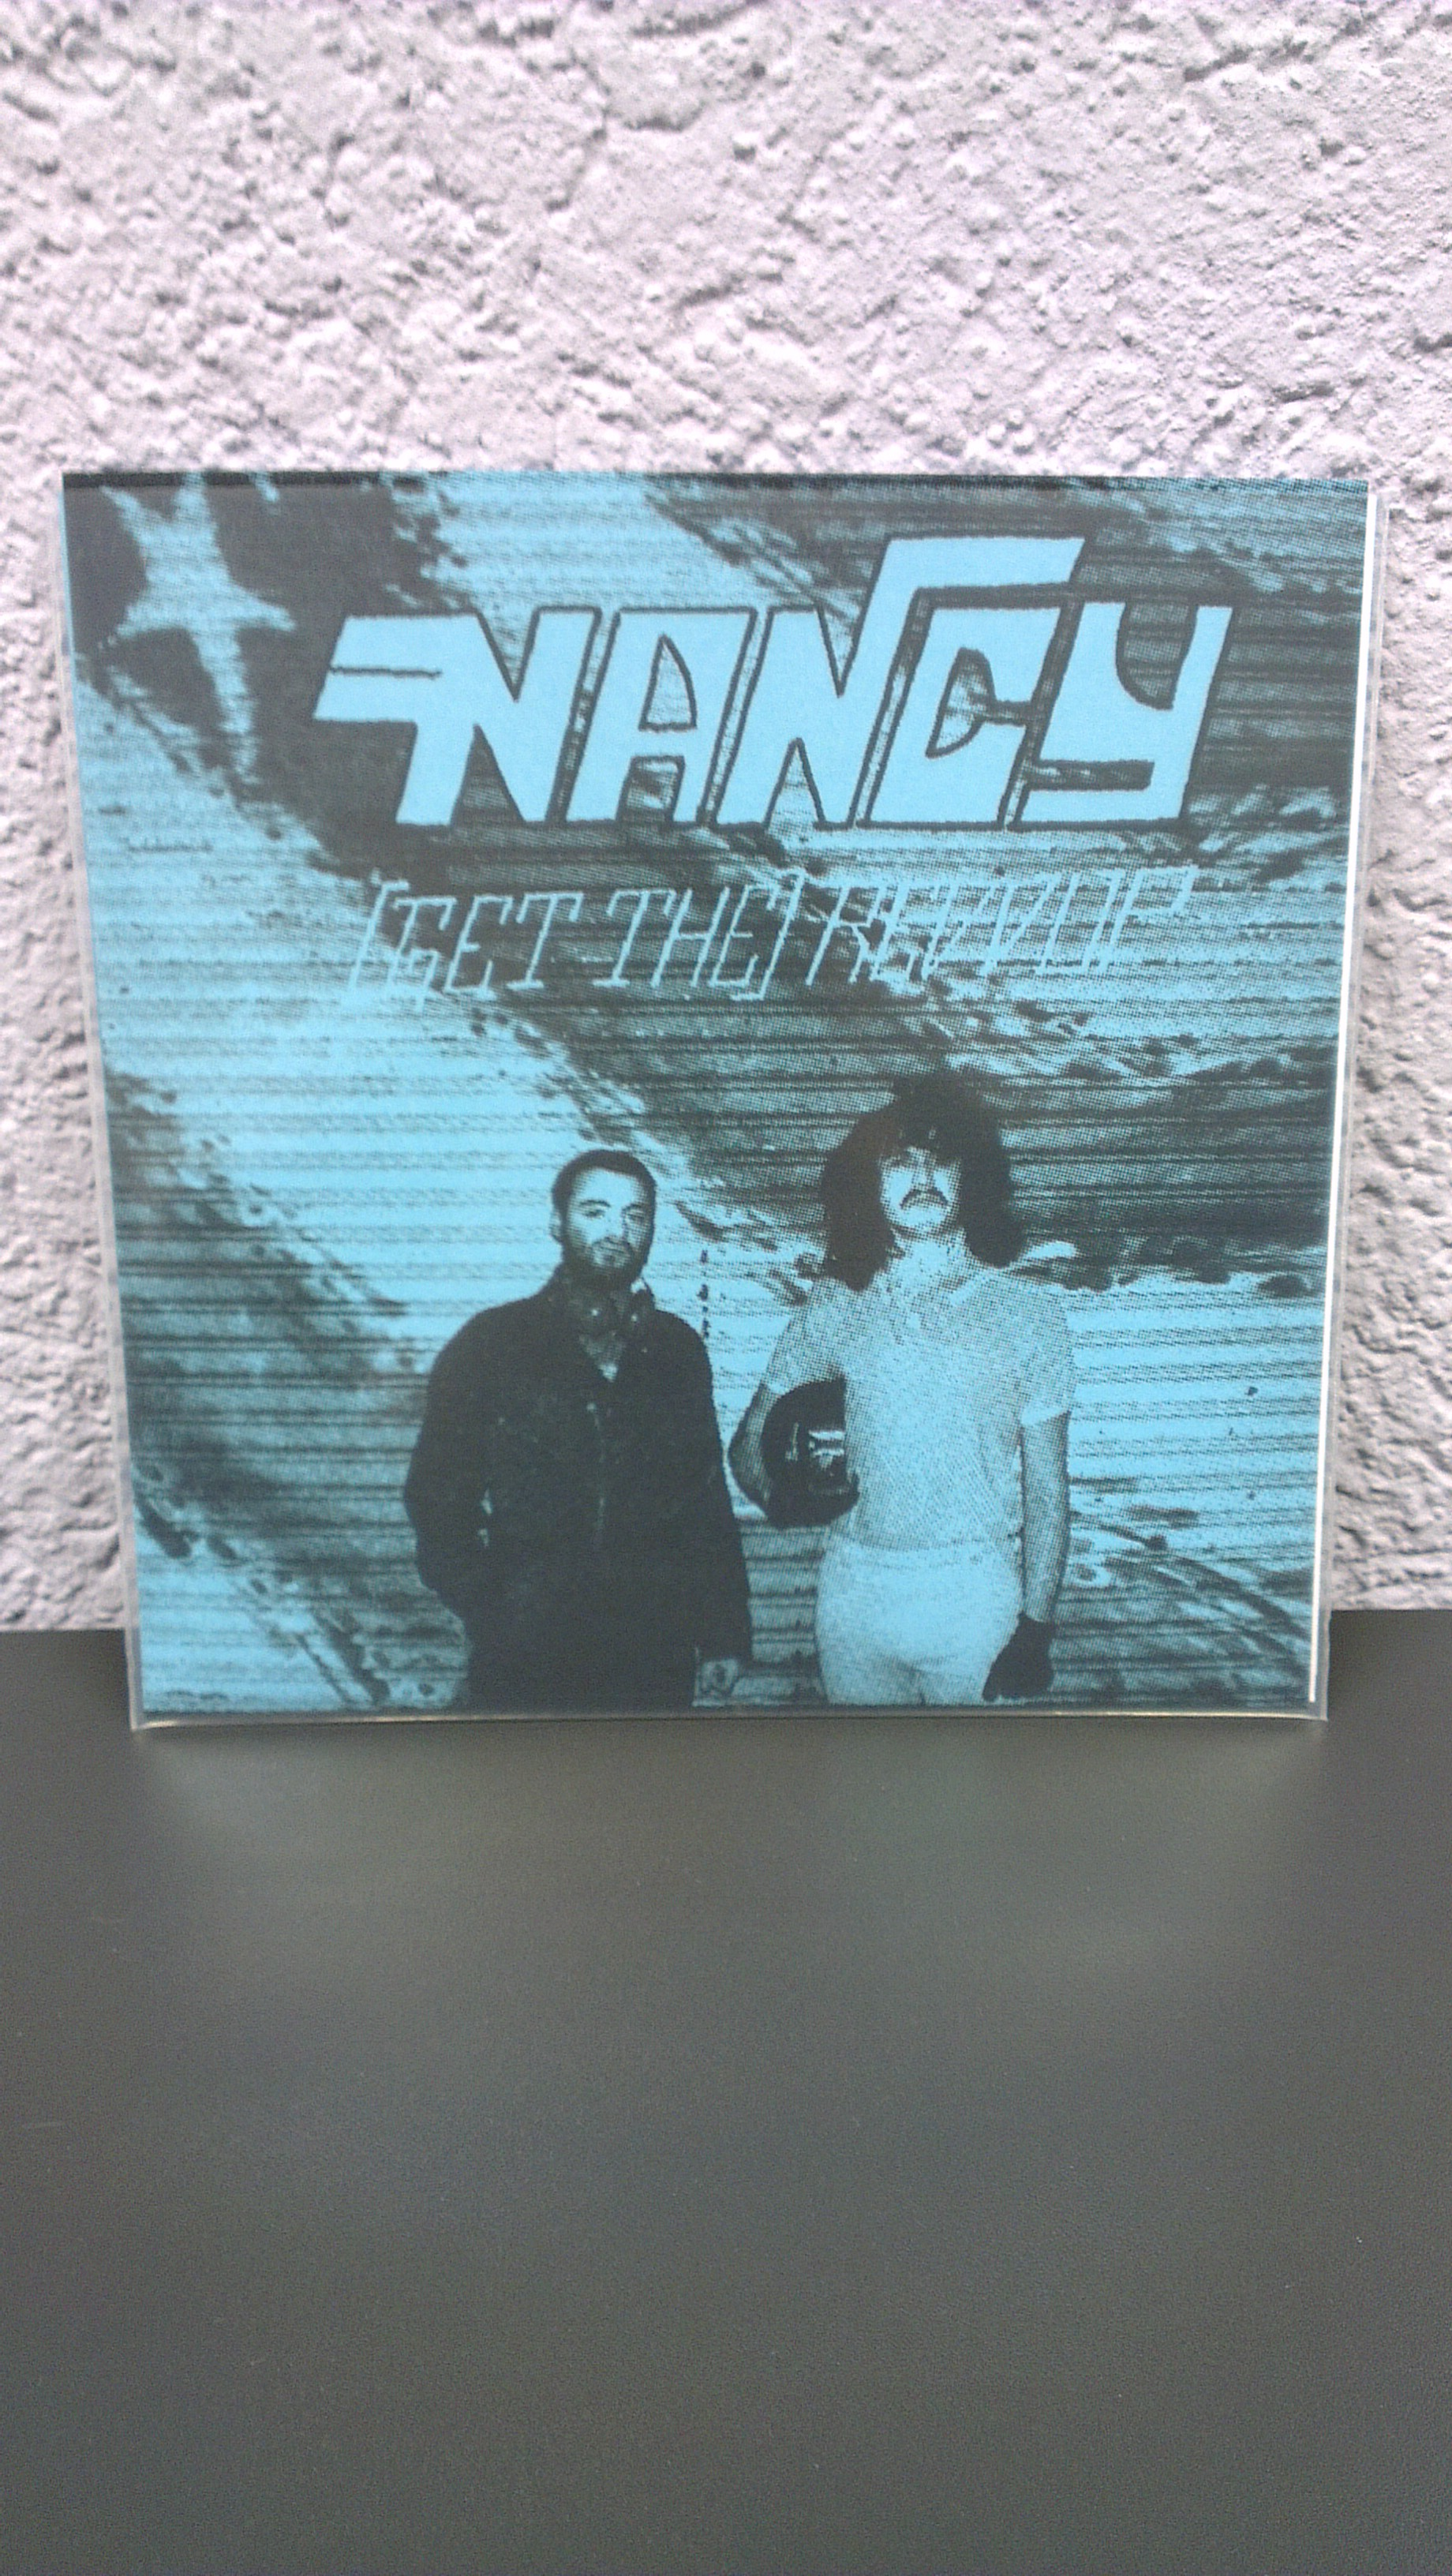 "Nancy - (Get The) REVVUP 7"" limited 350 Blue Silkscreen Cover"